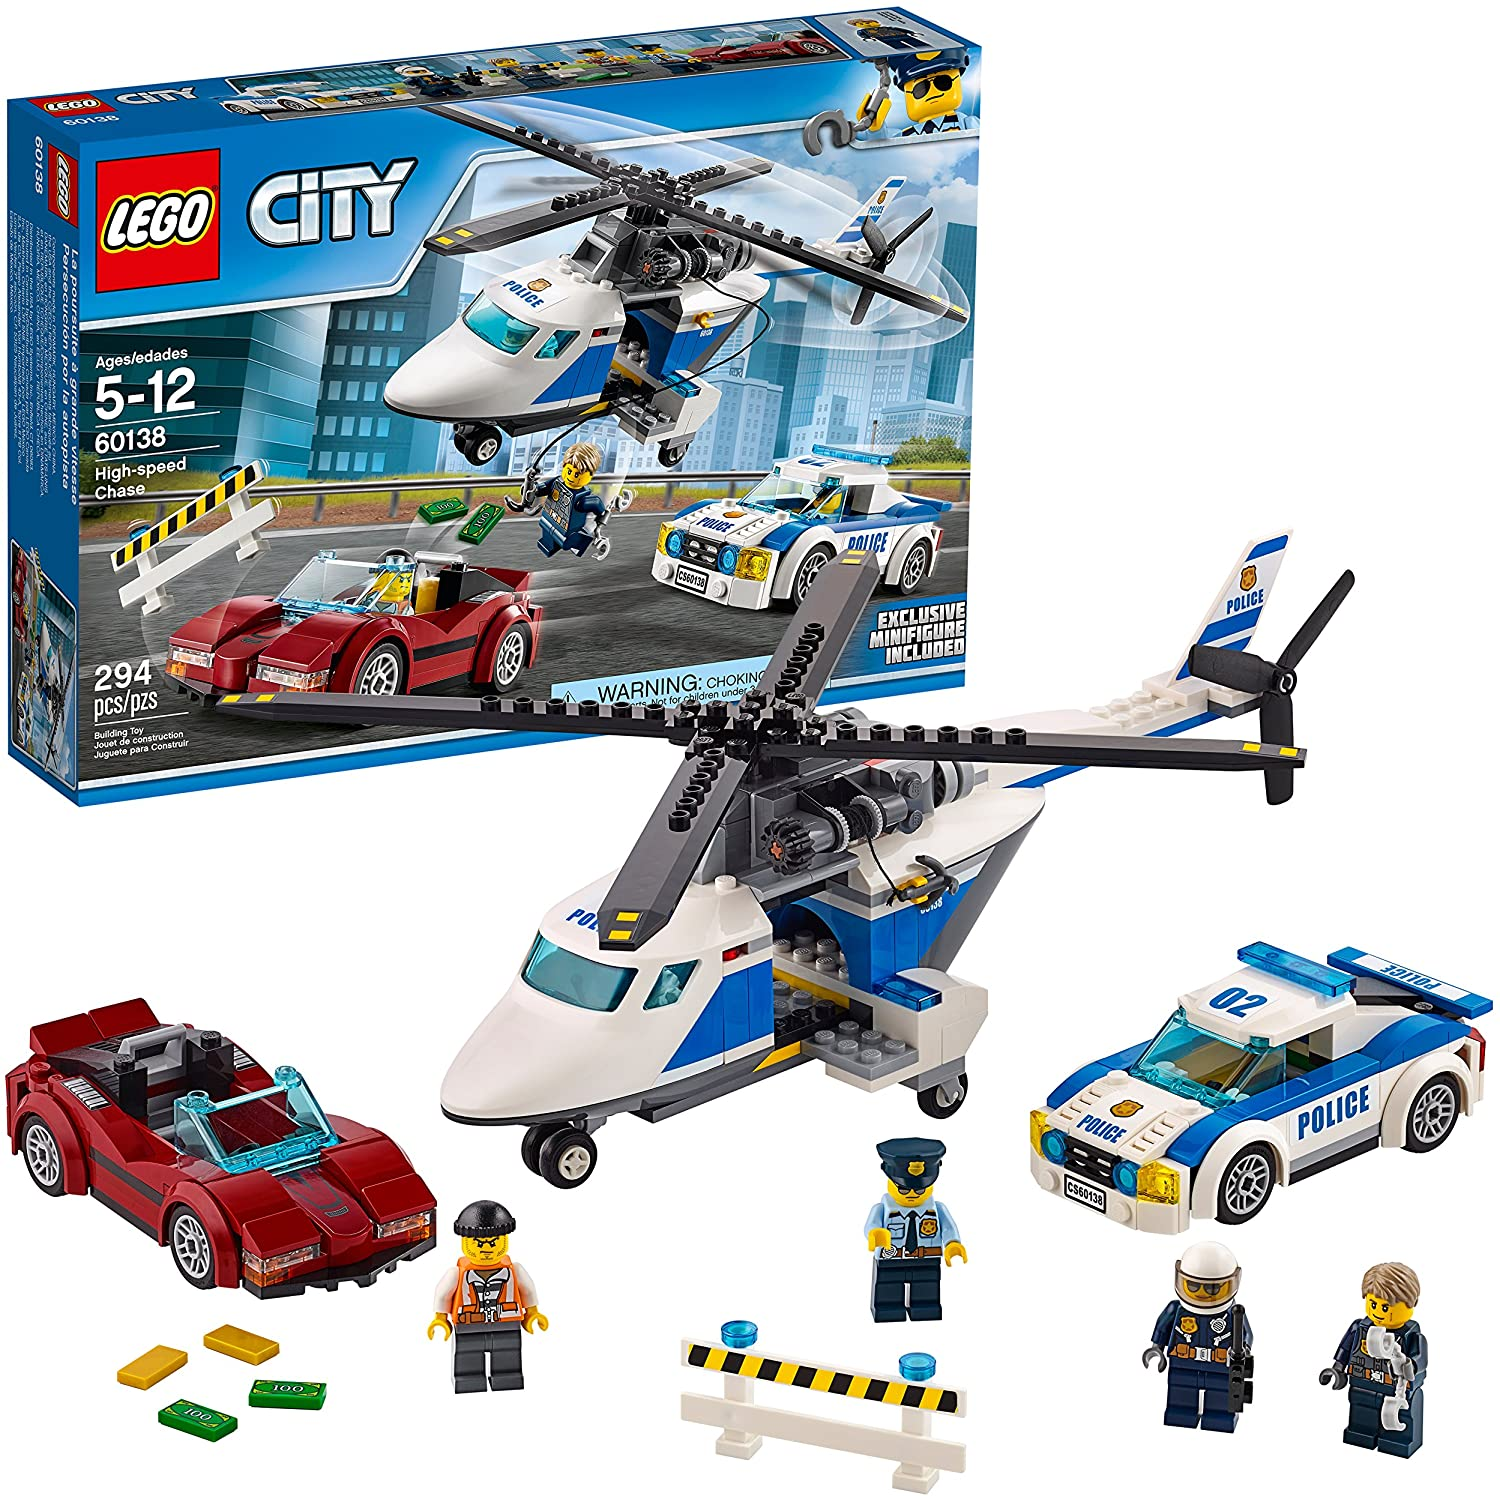 Amazon Com Lego City Police High Speed Chase 60138 Building Toy With Cop Car Police Helicopter And Getaway Sports Car 294 Pieces Toys Games